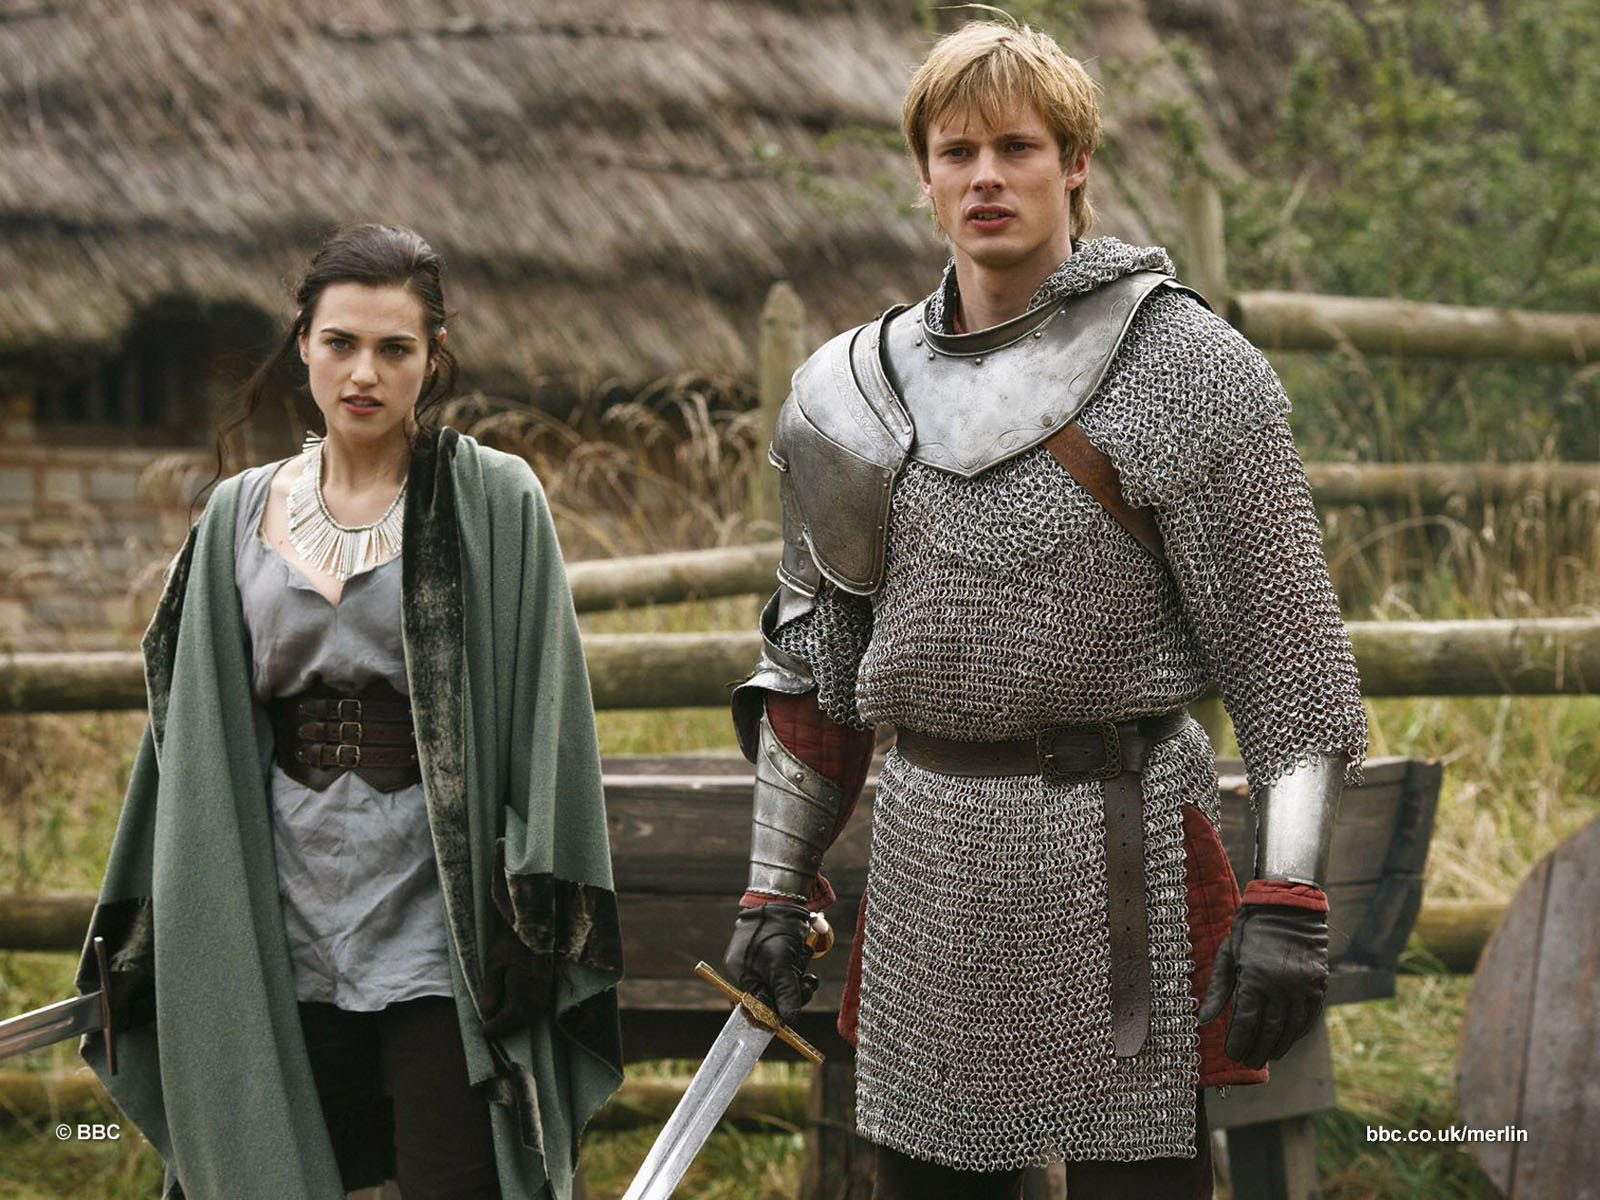 morgana and merlin dating We talk to the actors behind merlin and morgana about their characters, the final season and which of the show's slash pairings they'd want to see made canon.